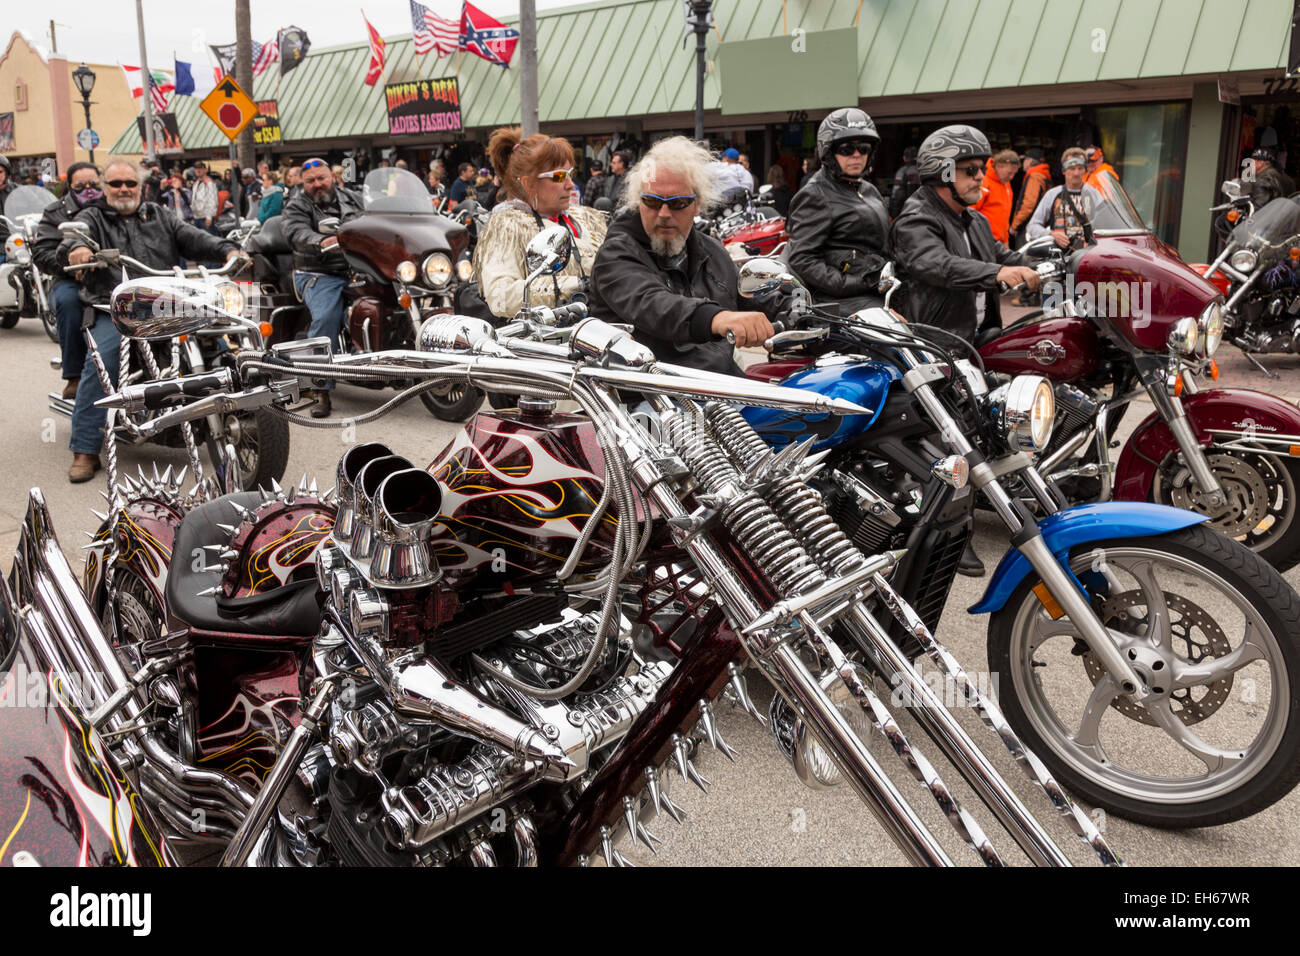 Leather Clad Bikers Ride Down Main Street Past A Customized Stock